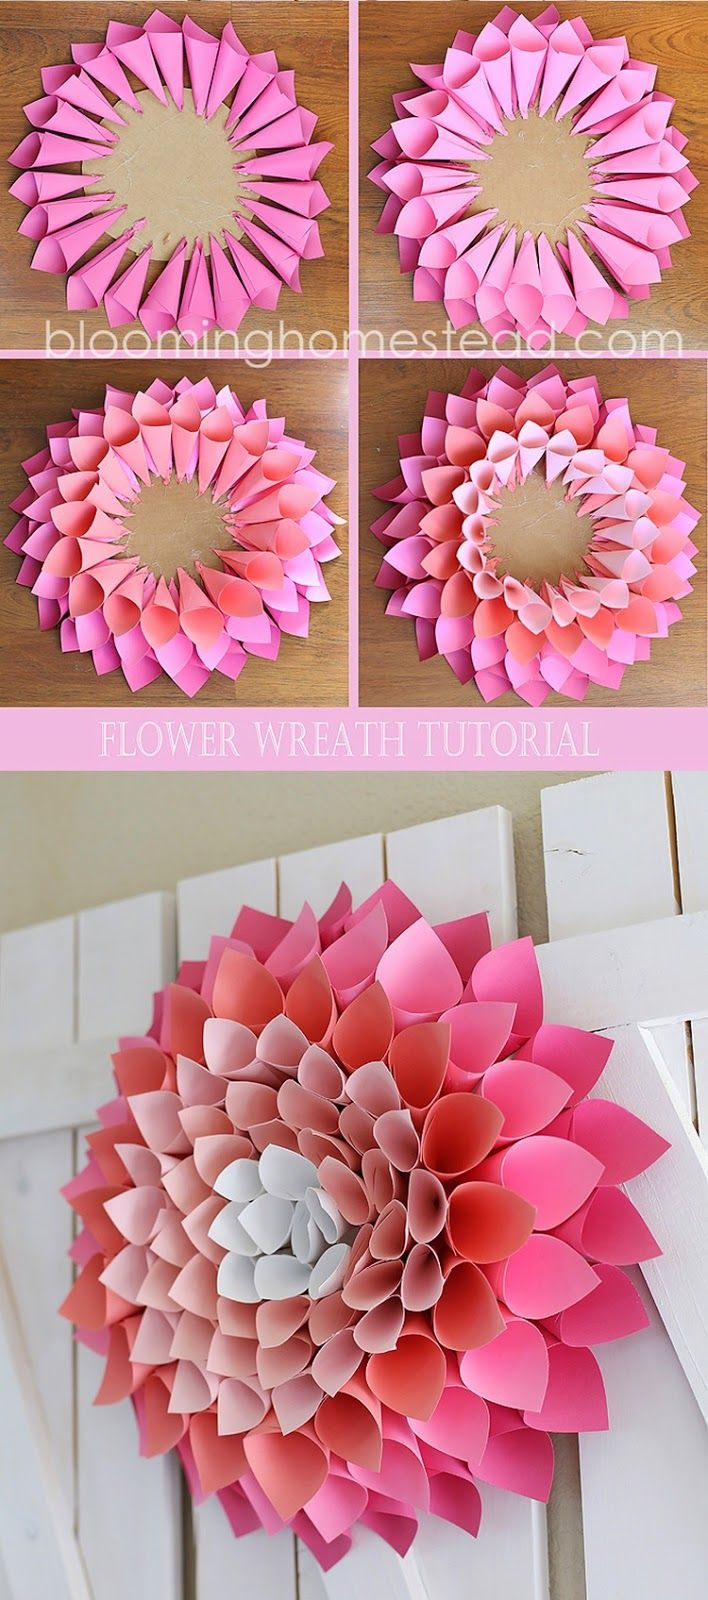 Make Beautiful Flower With Papers D Origami Art Pinterest